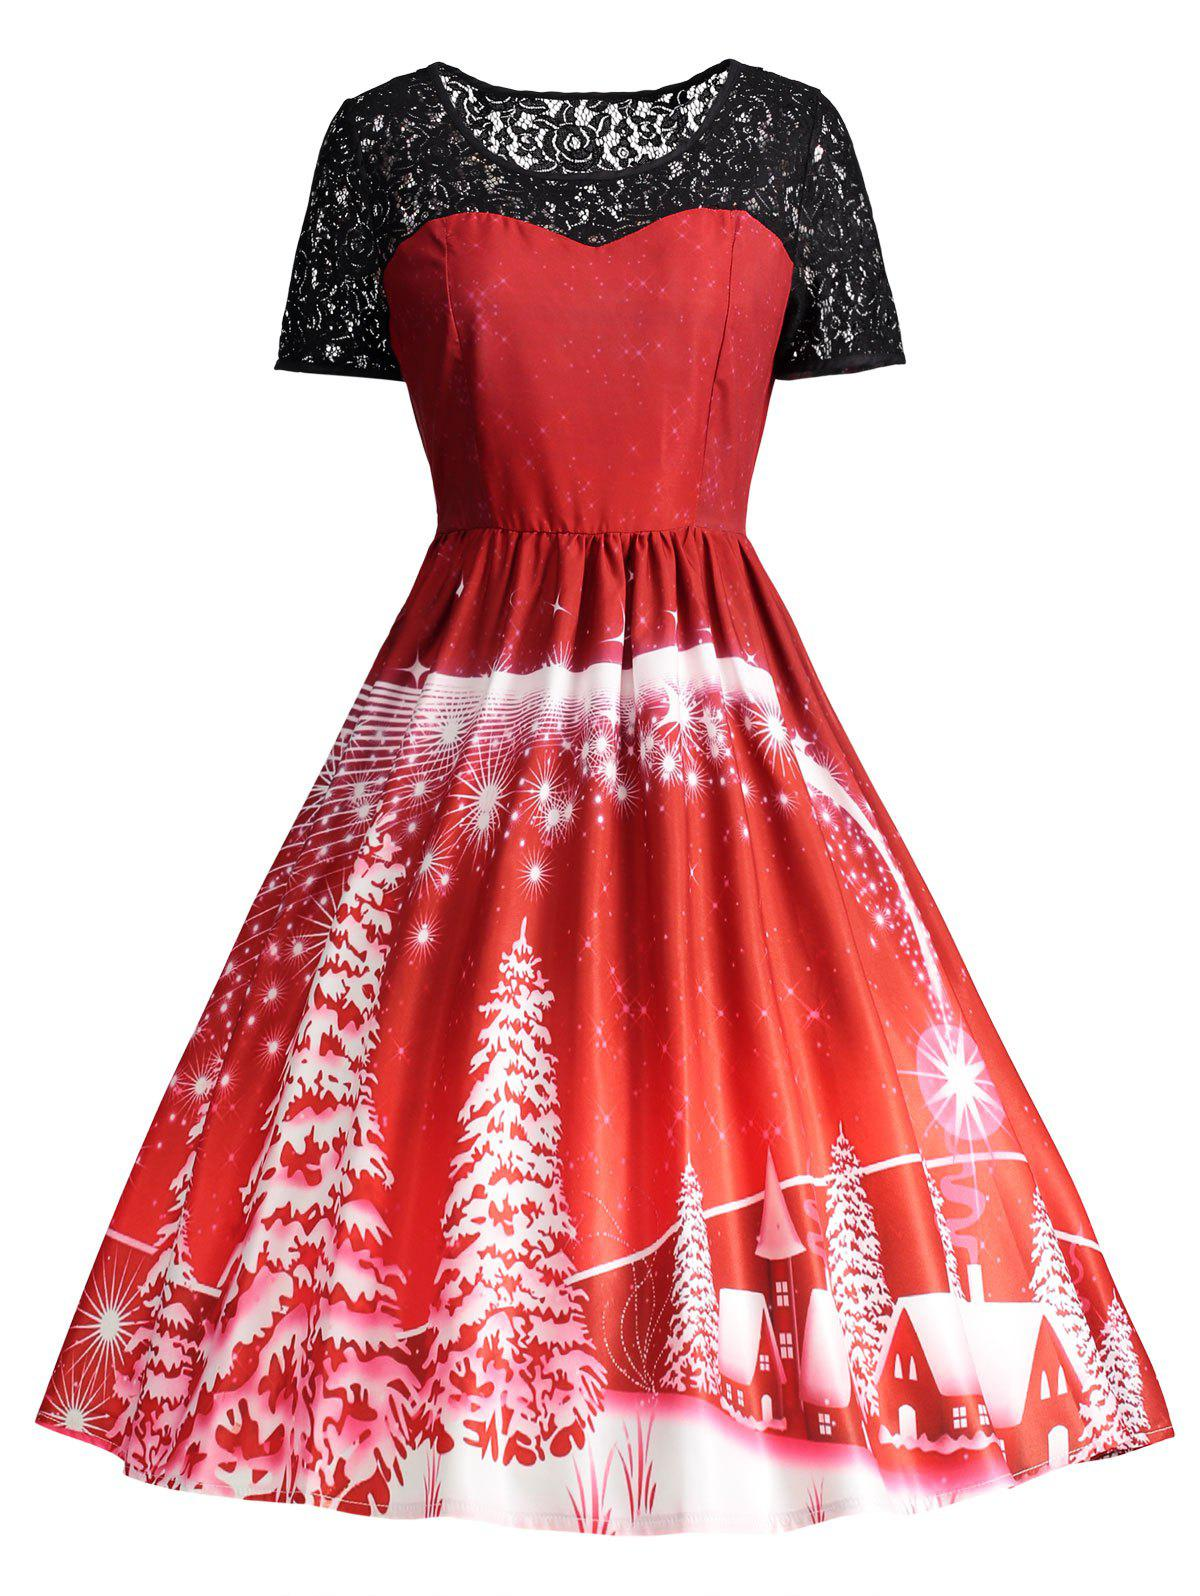 Ugly Christmas Party Lace Trim Vintage DressWOMEN<br><br>Size: S; Color: RED; Style: Cute; Material: Polyester,Spandex; Silhouette: A-Line; Dresses Length: Knee-Length; Neckline: Round Collar; Sleeve Length: Short Sleeves; Pattern Type: Others; With Belt: No; Season: Fall,Spring; Weight: 0.3150kg; Package Contents: 1 x Dress;